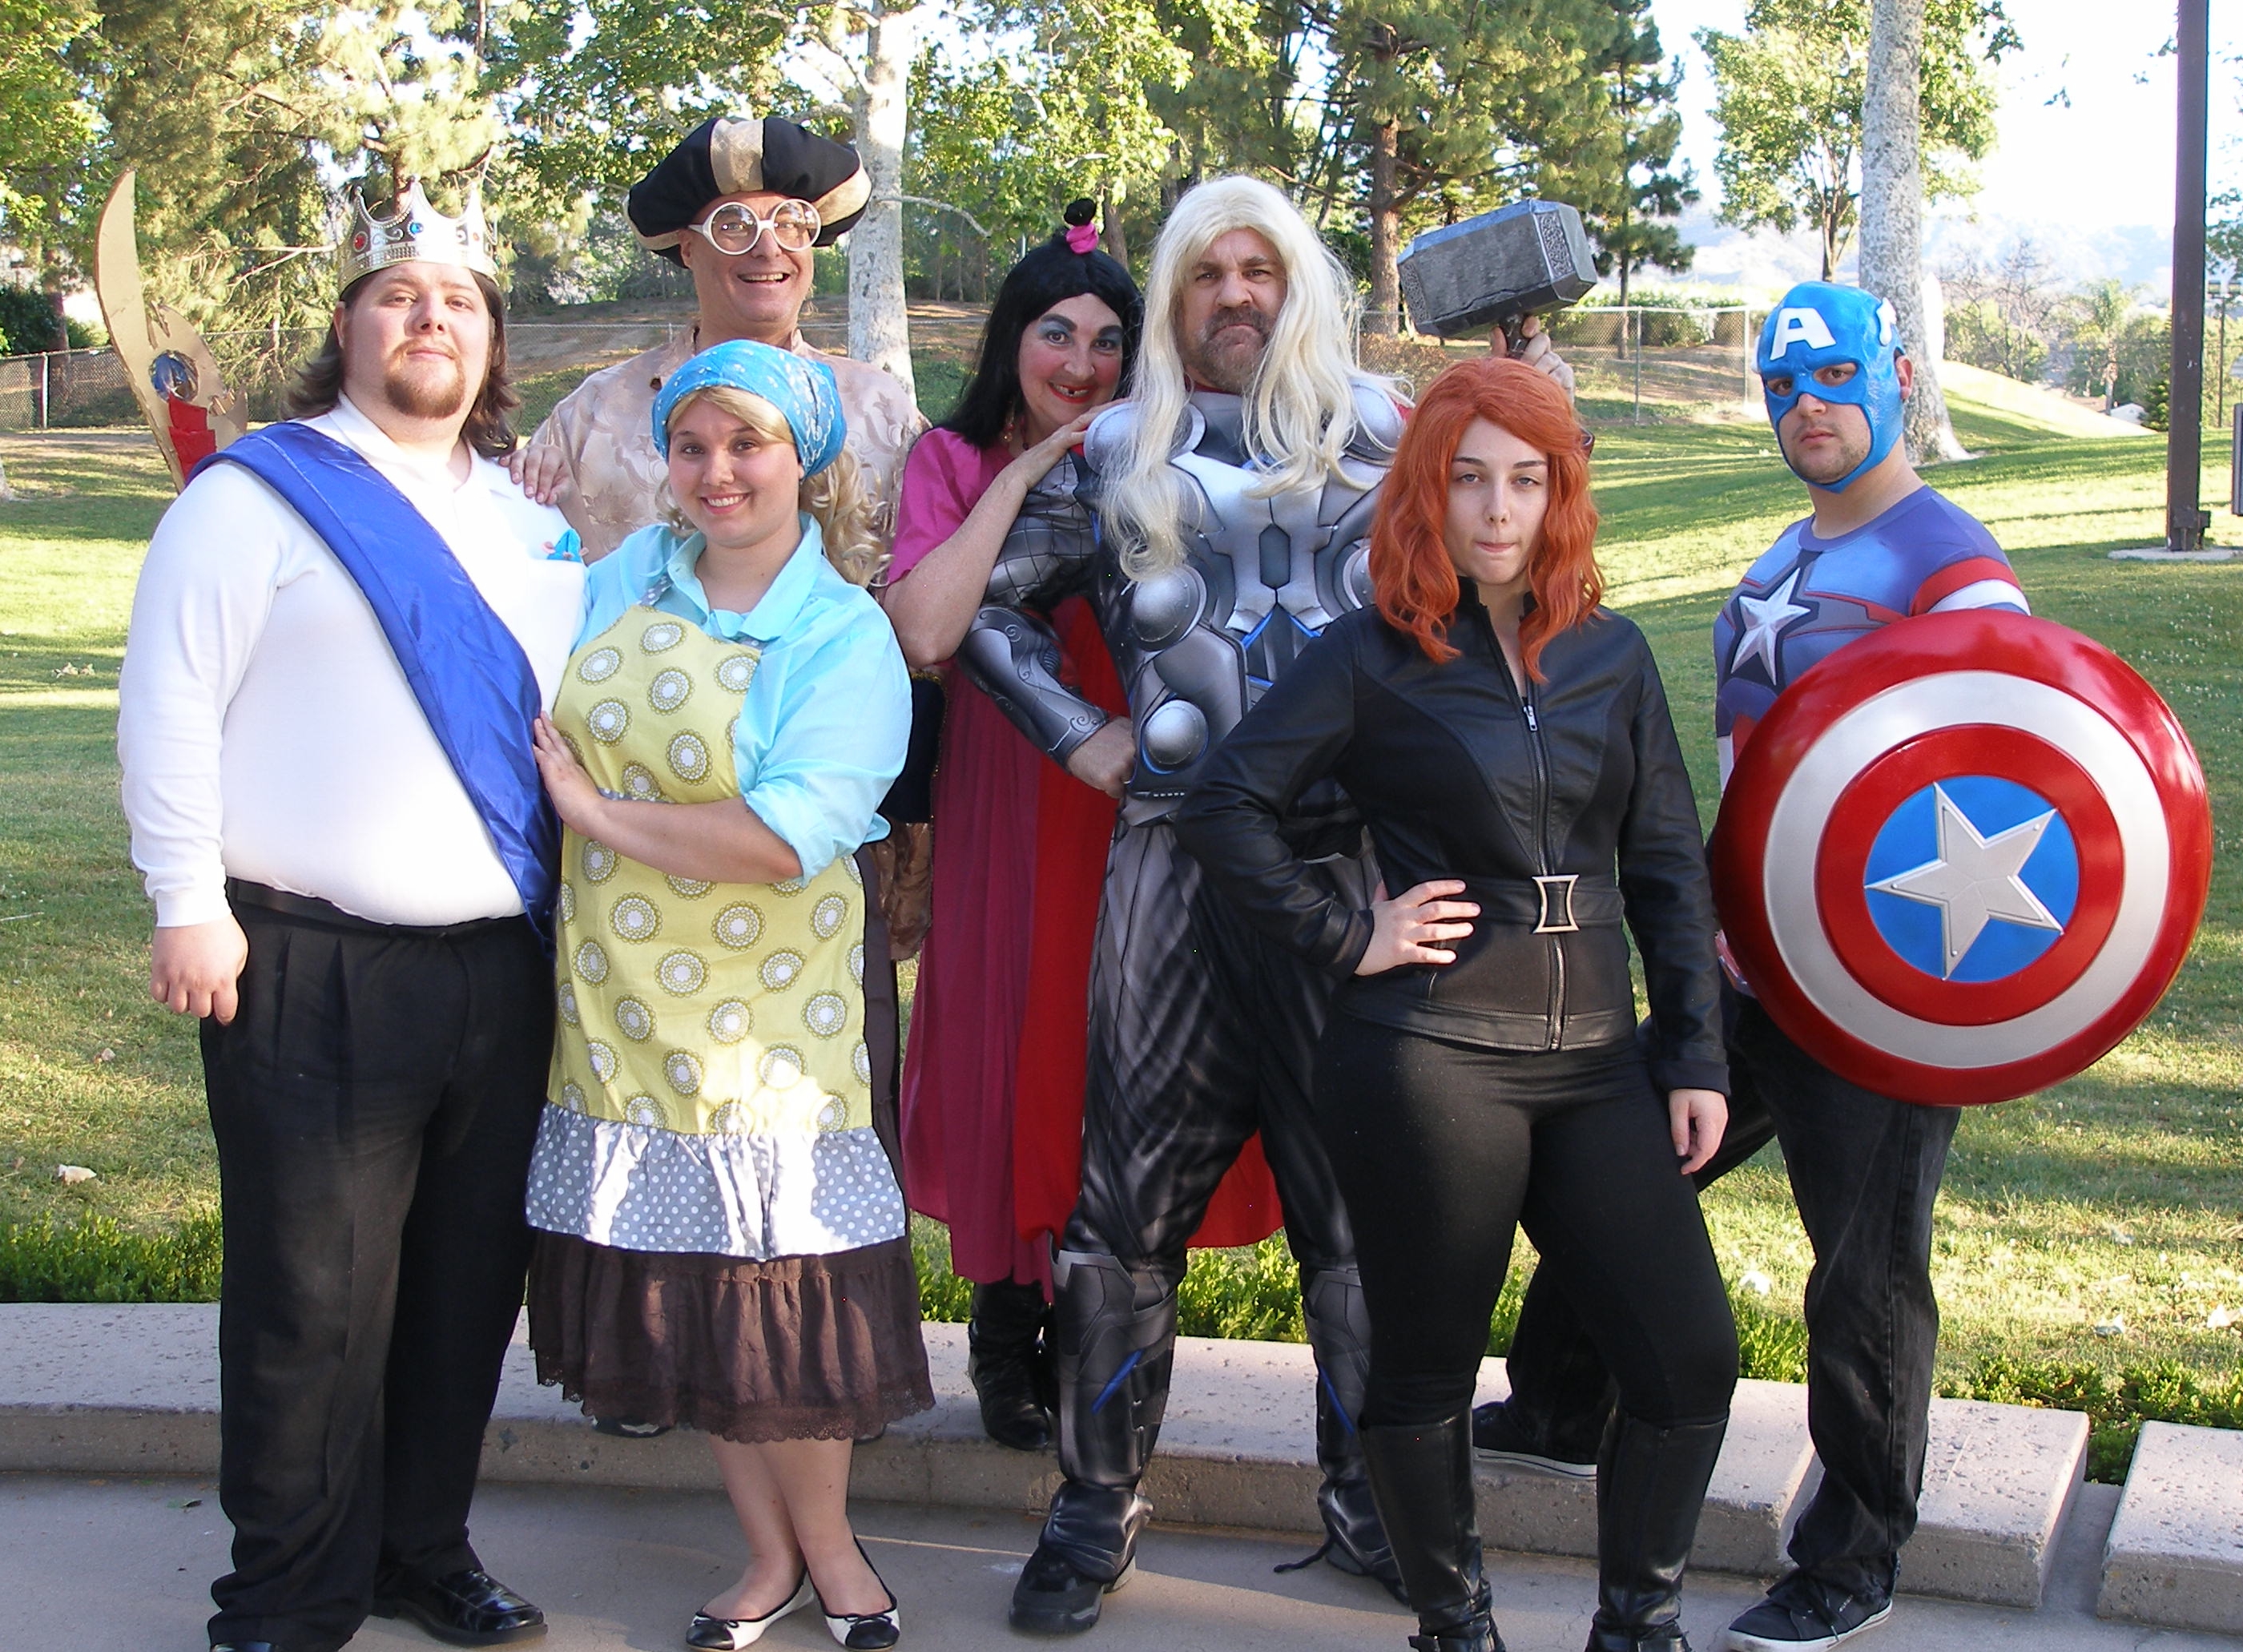 Cinderella Meets the Avengers 2016